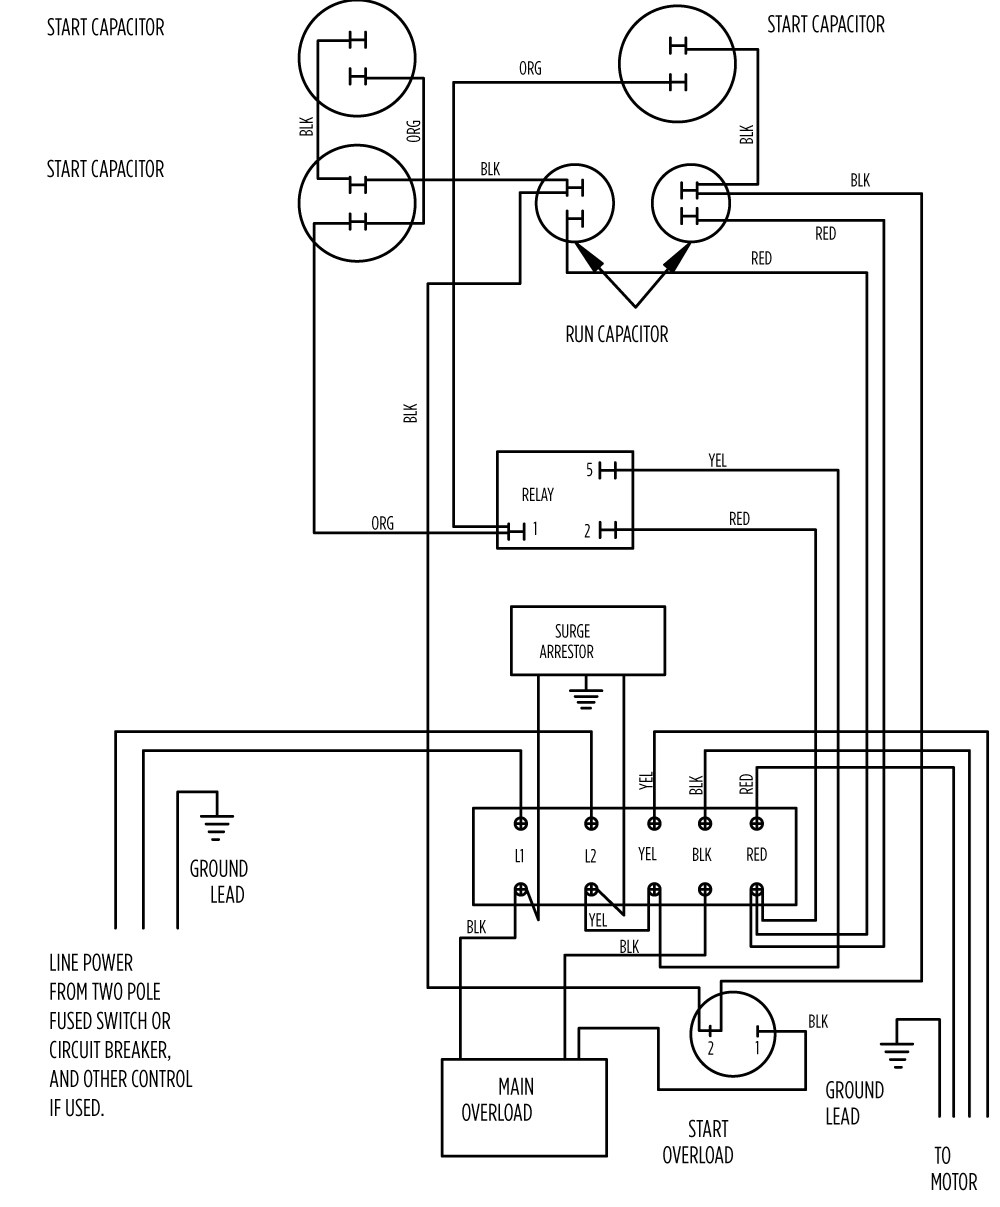 10 hp standard 282 202 9210 or 282 202 9230_aim gallery?format=jpg&quality=80 aim manual page 57 single phase motors and controls motor Submersible Well Pumps Diagrams at bakdesigns.co